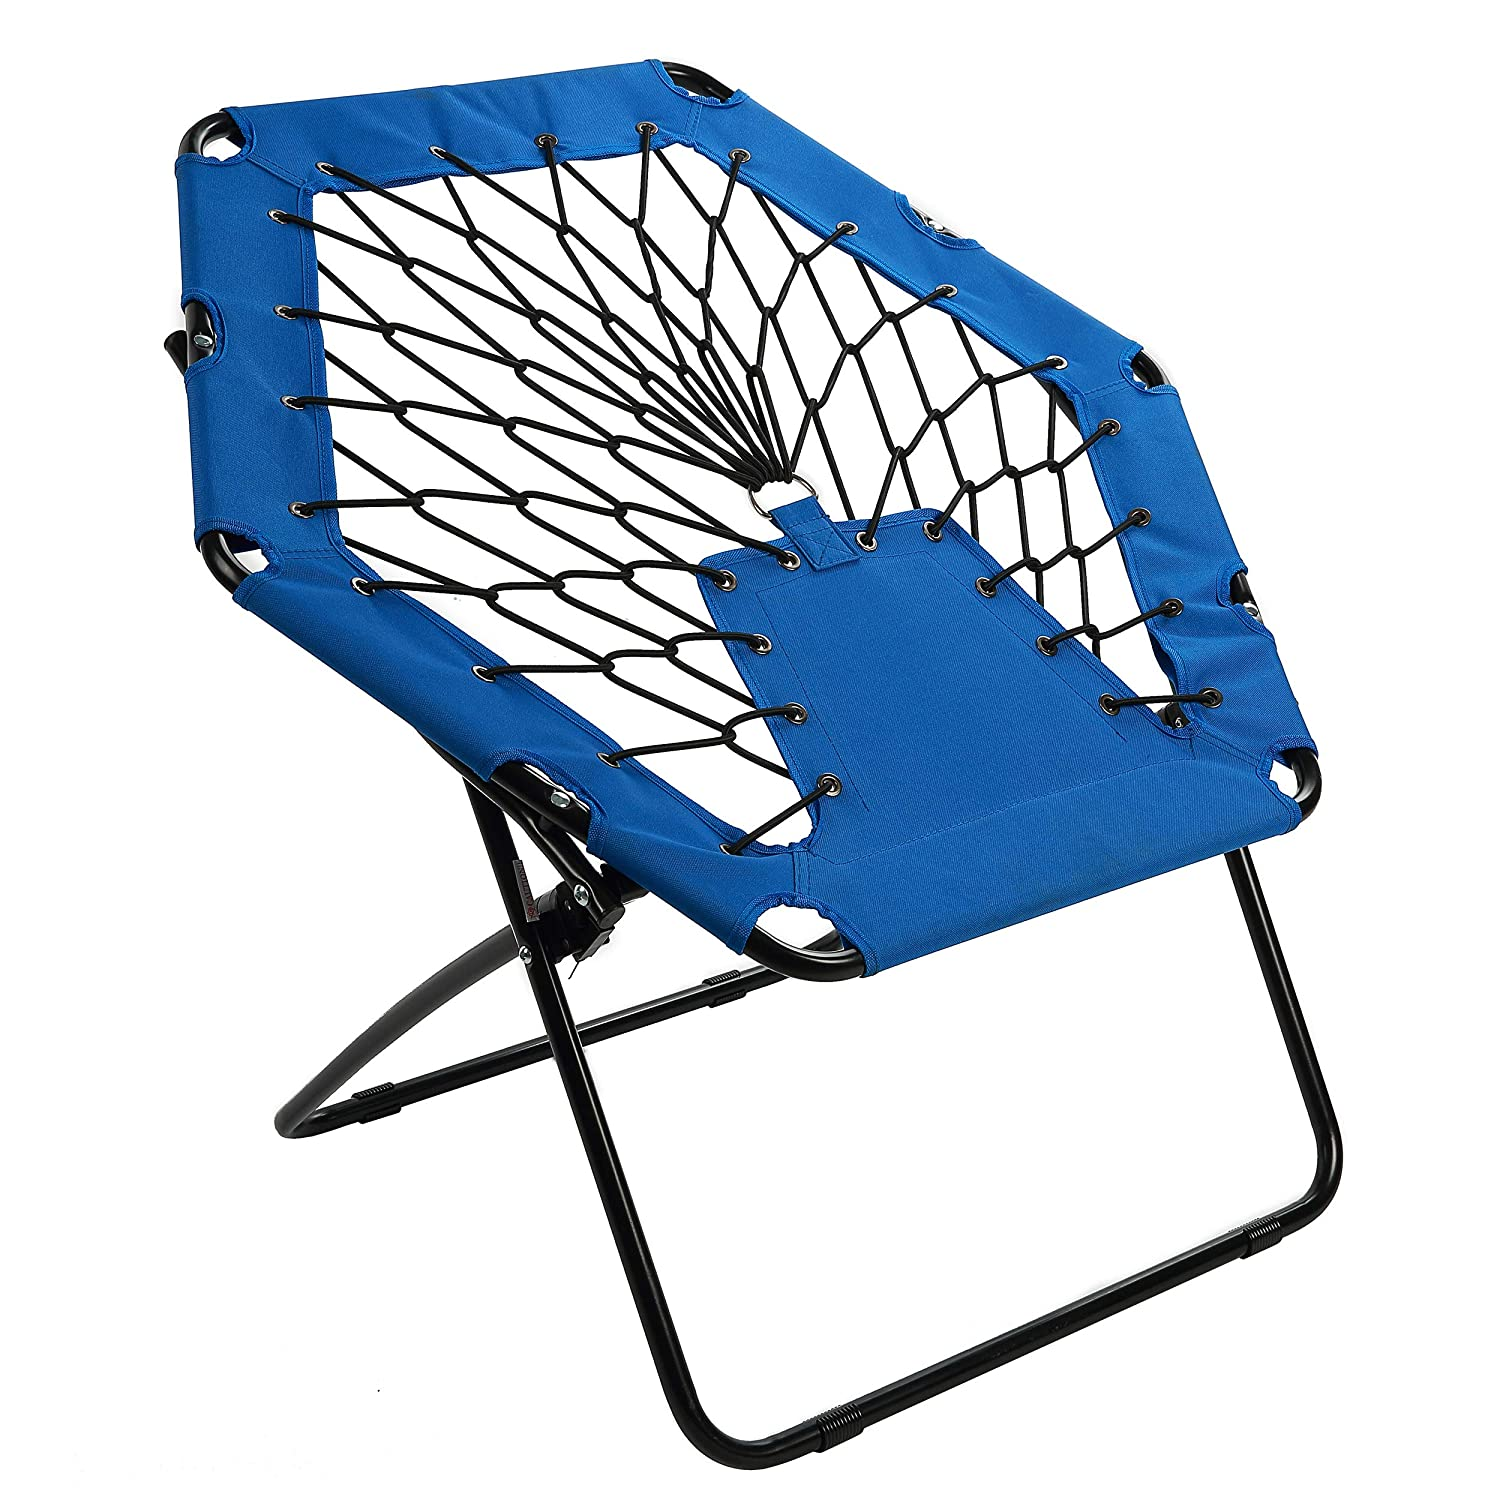 Awe Inspiring Harvil Portable Hexagon Bungee Chair Blue Gmtry Best Dining Table And Chair Ideas Images Gmtryco